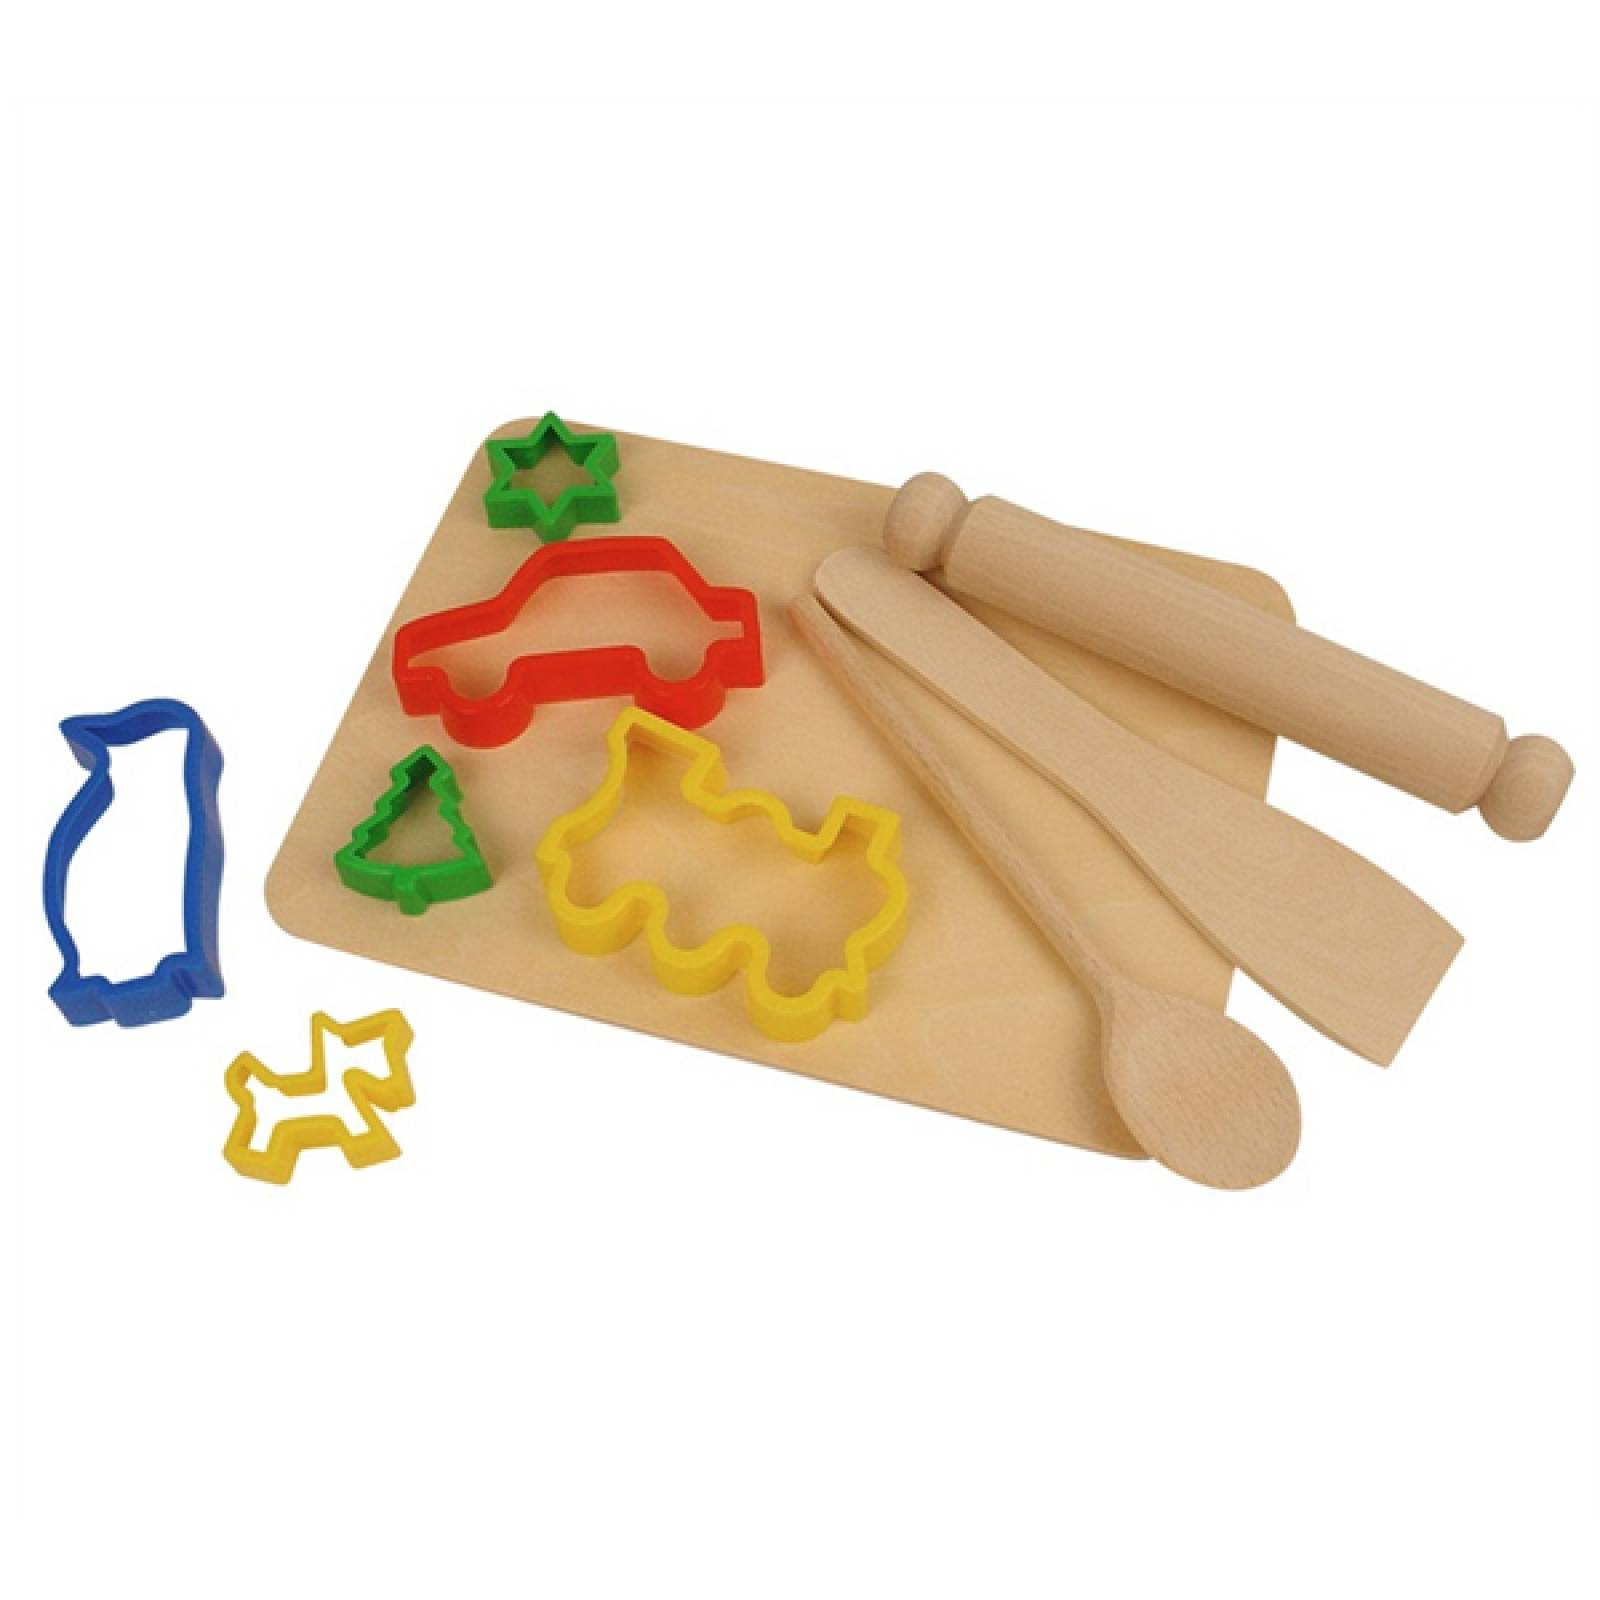 Pastry Making Set 3yr+